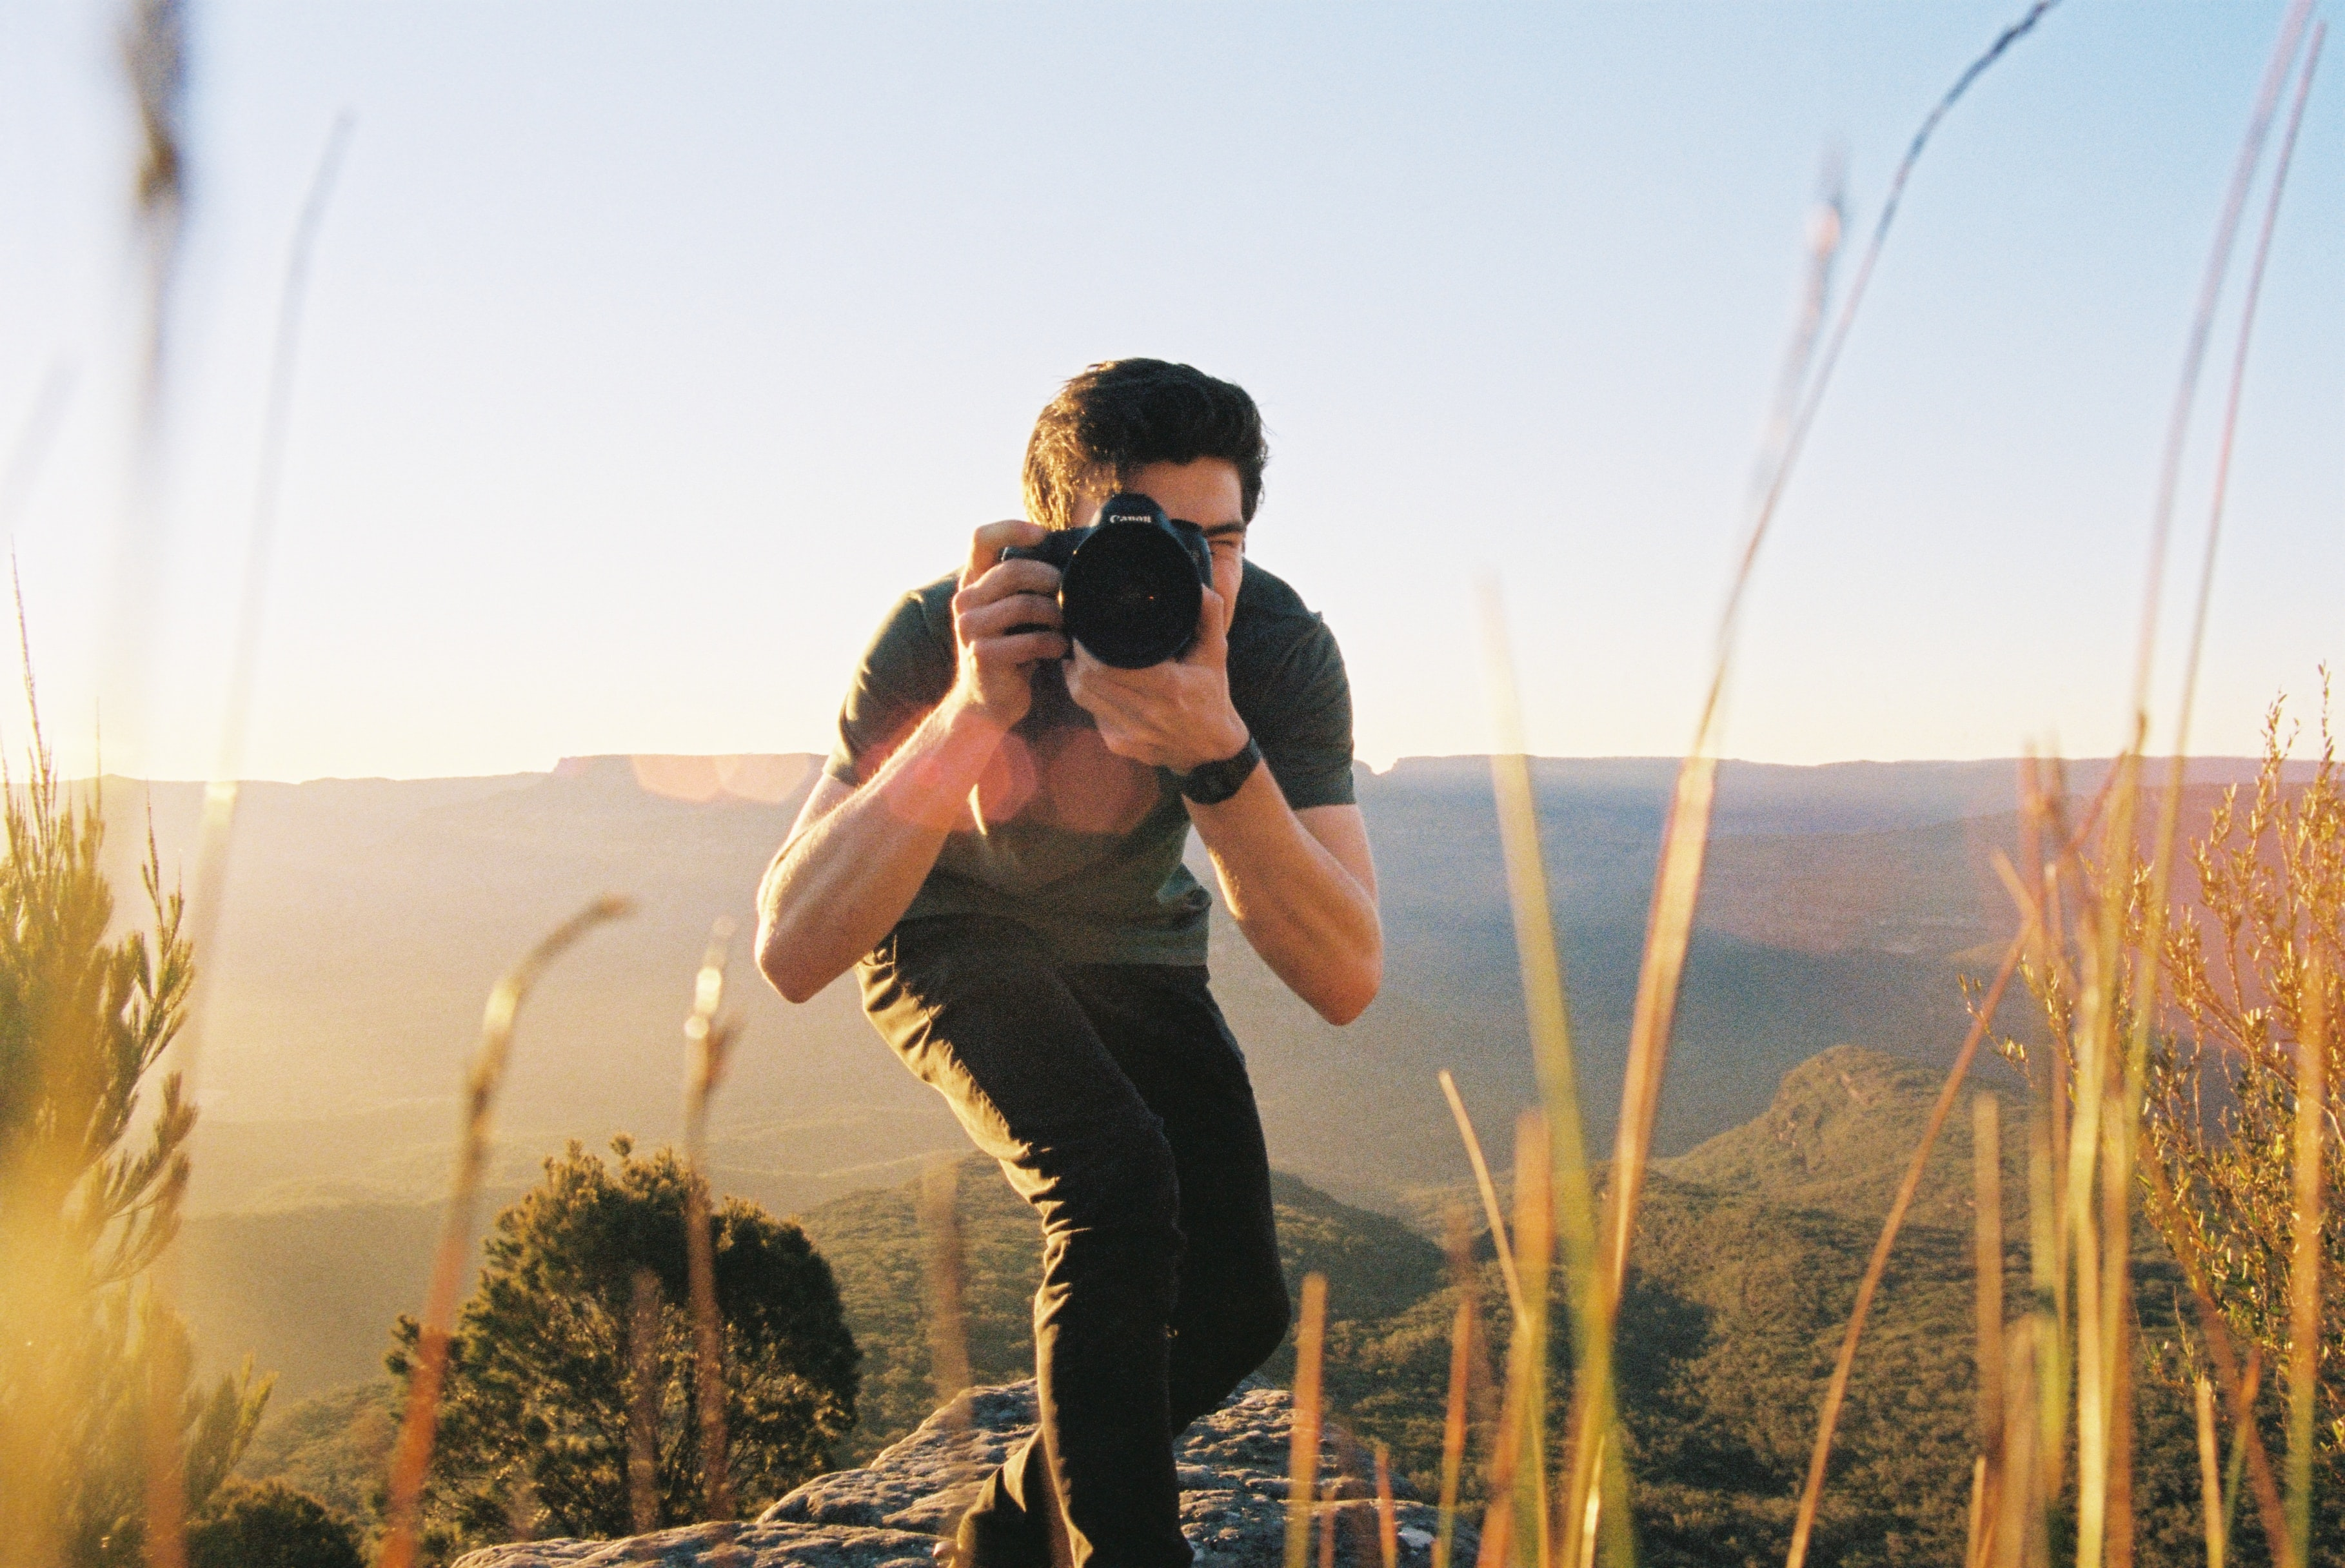 Photographer crouches with a camera to take a desert picture